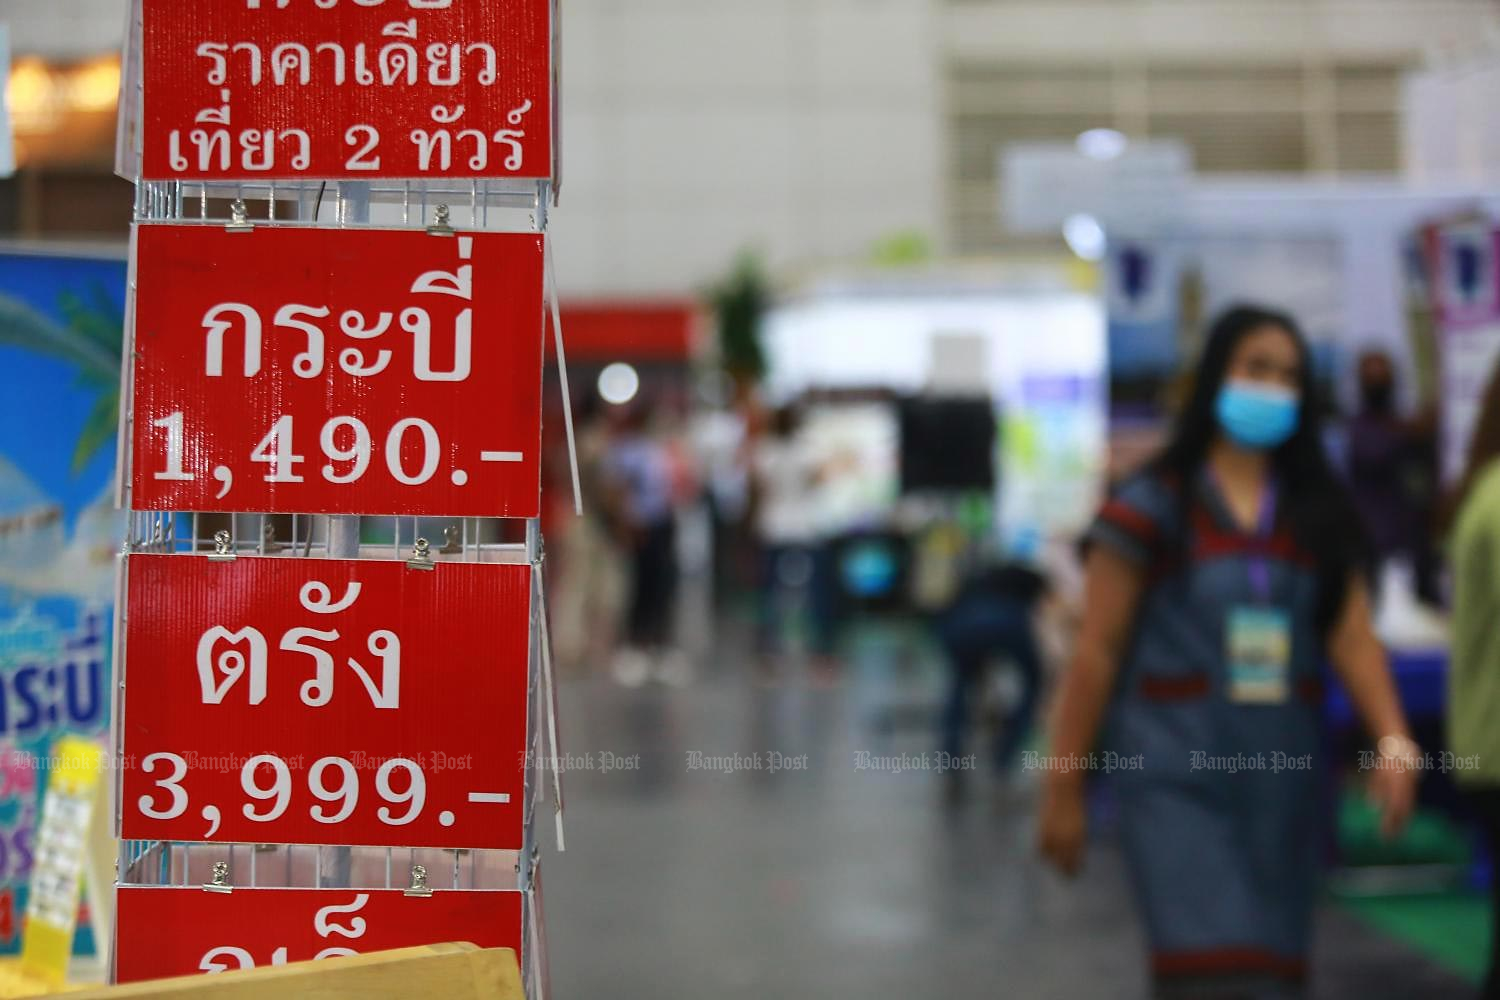 Local travel deals offered at the recent 'Thai Tiew Thai' fair. (Photo by Somchai Poomlard)